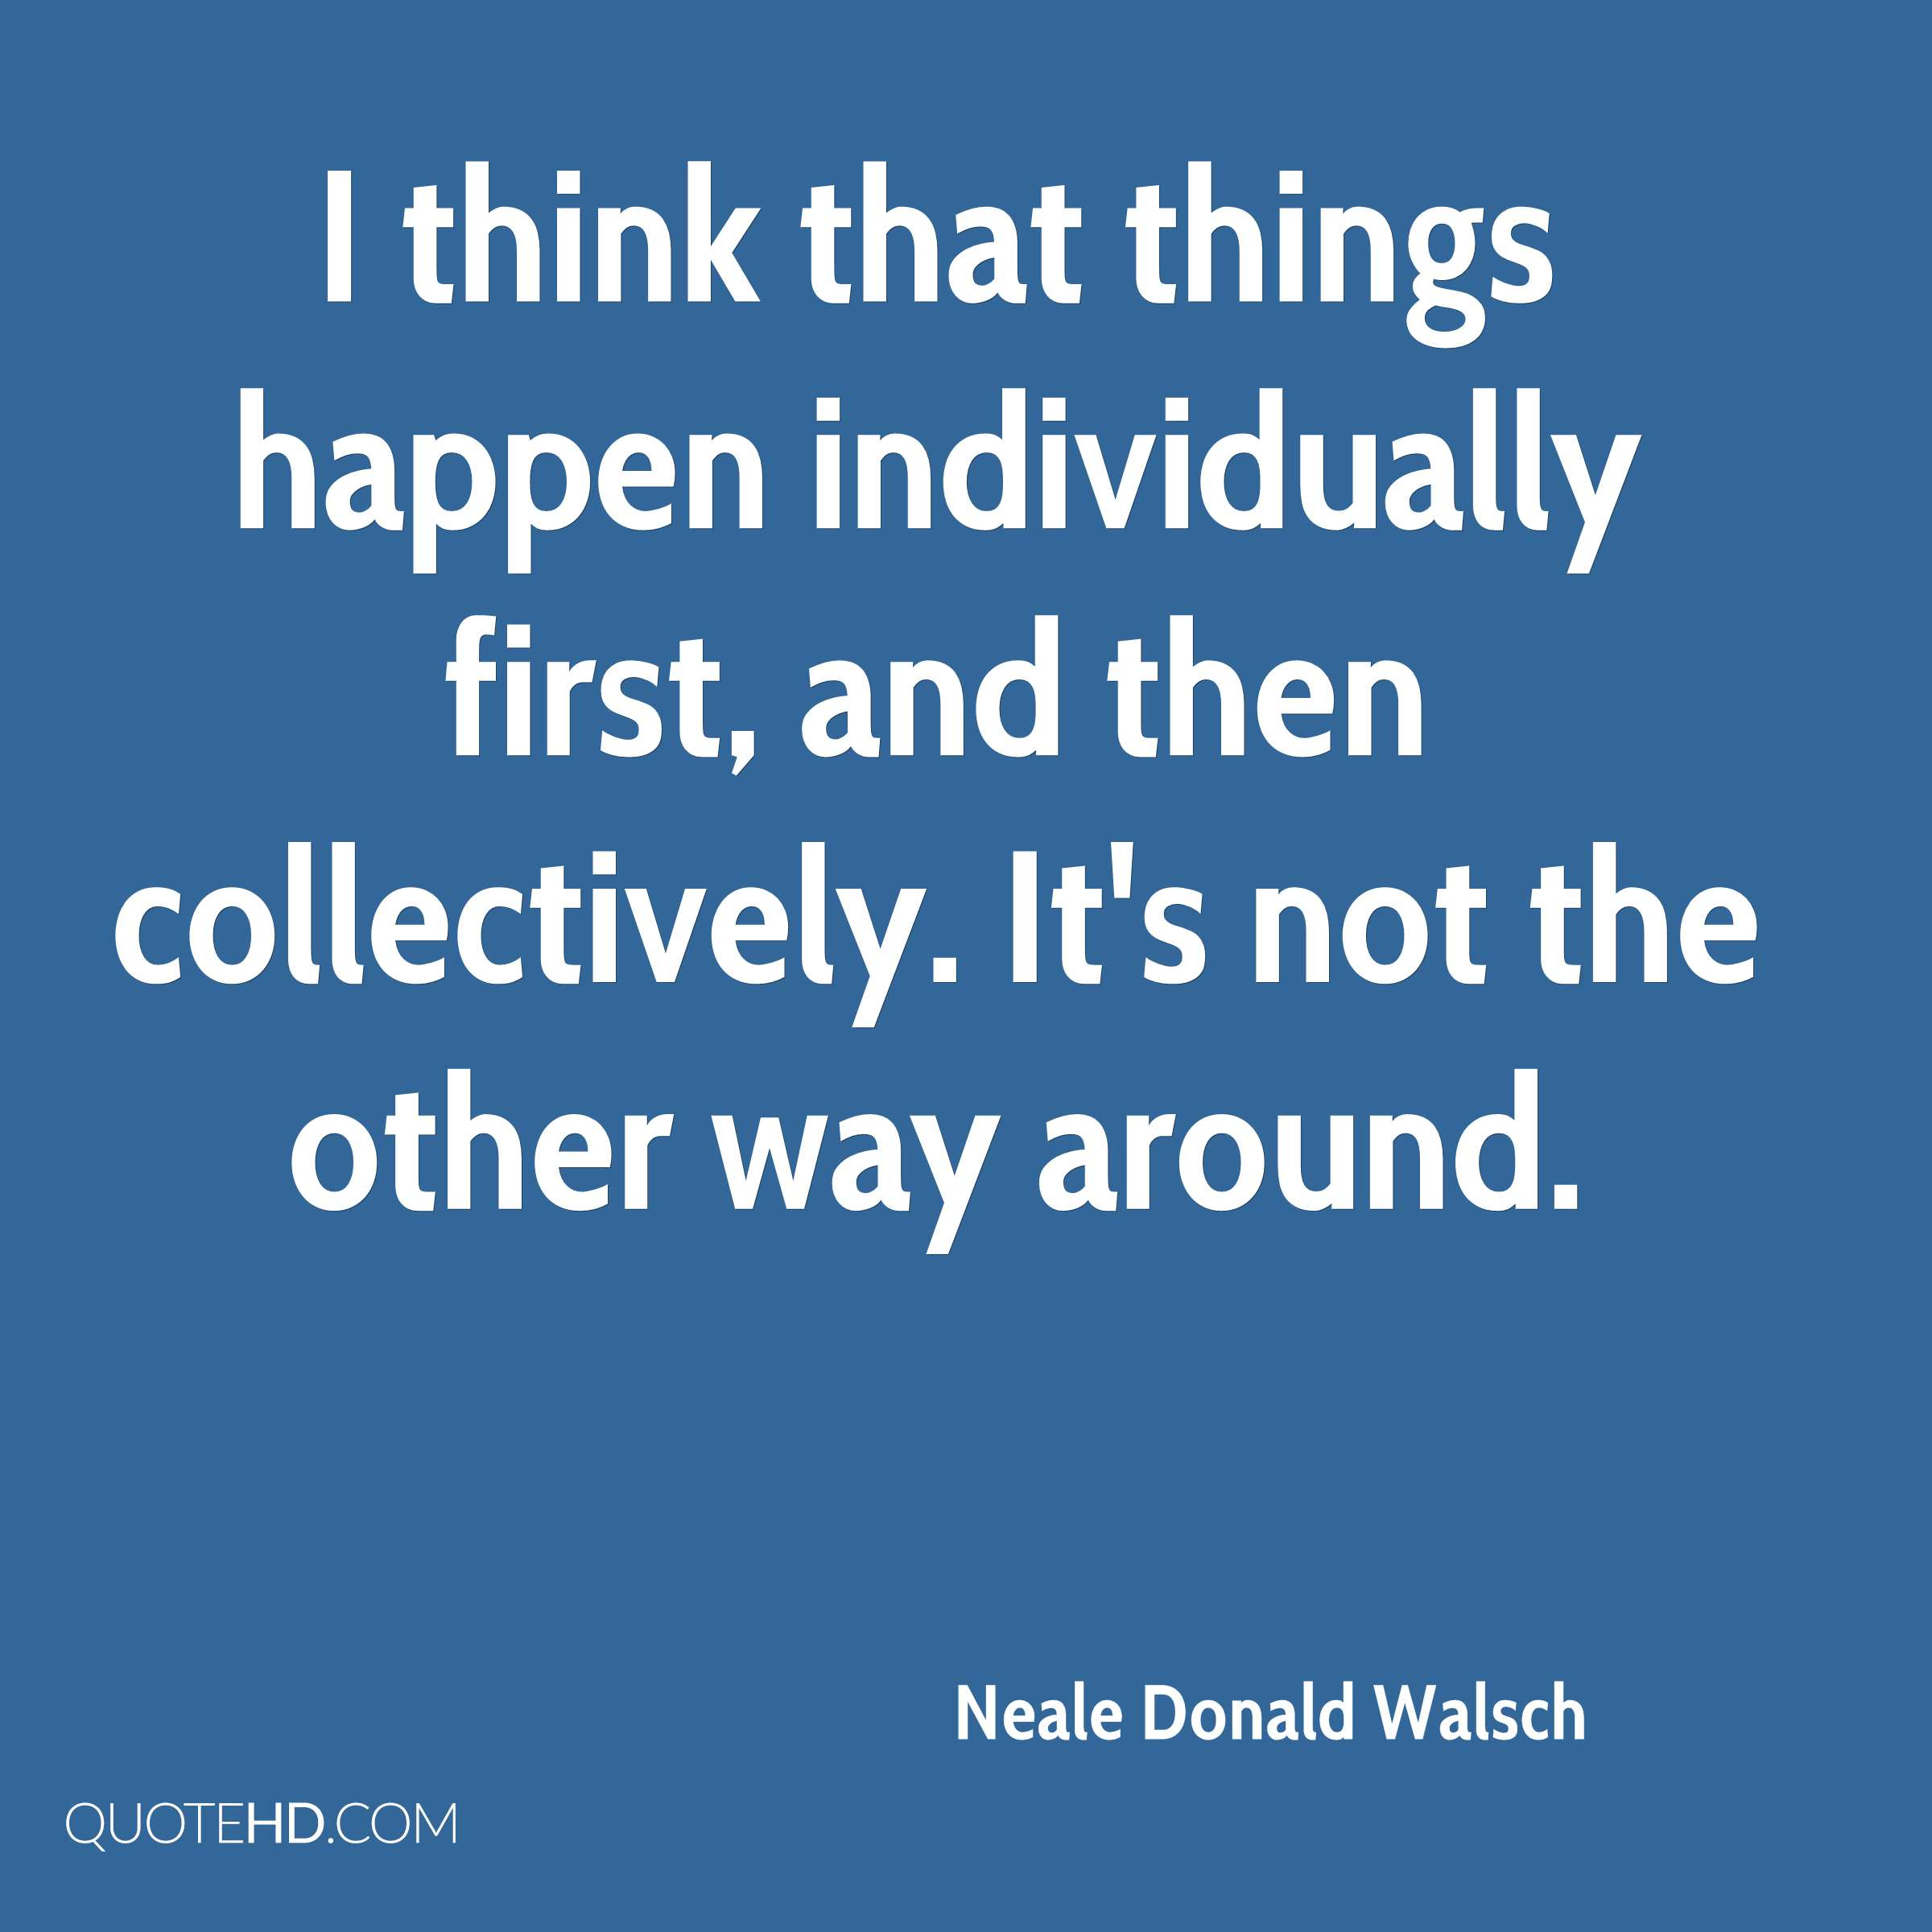 I think that things happen individually first, and then collectively. It's not the other way around.